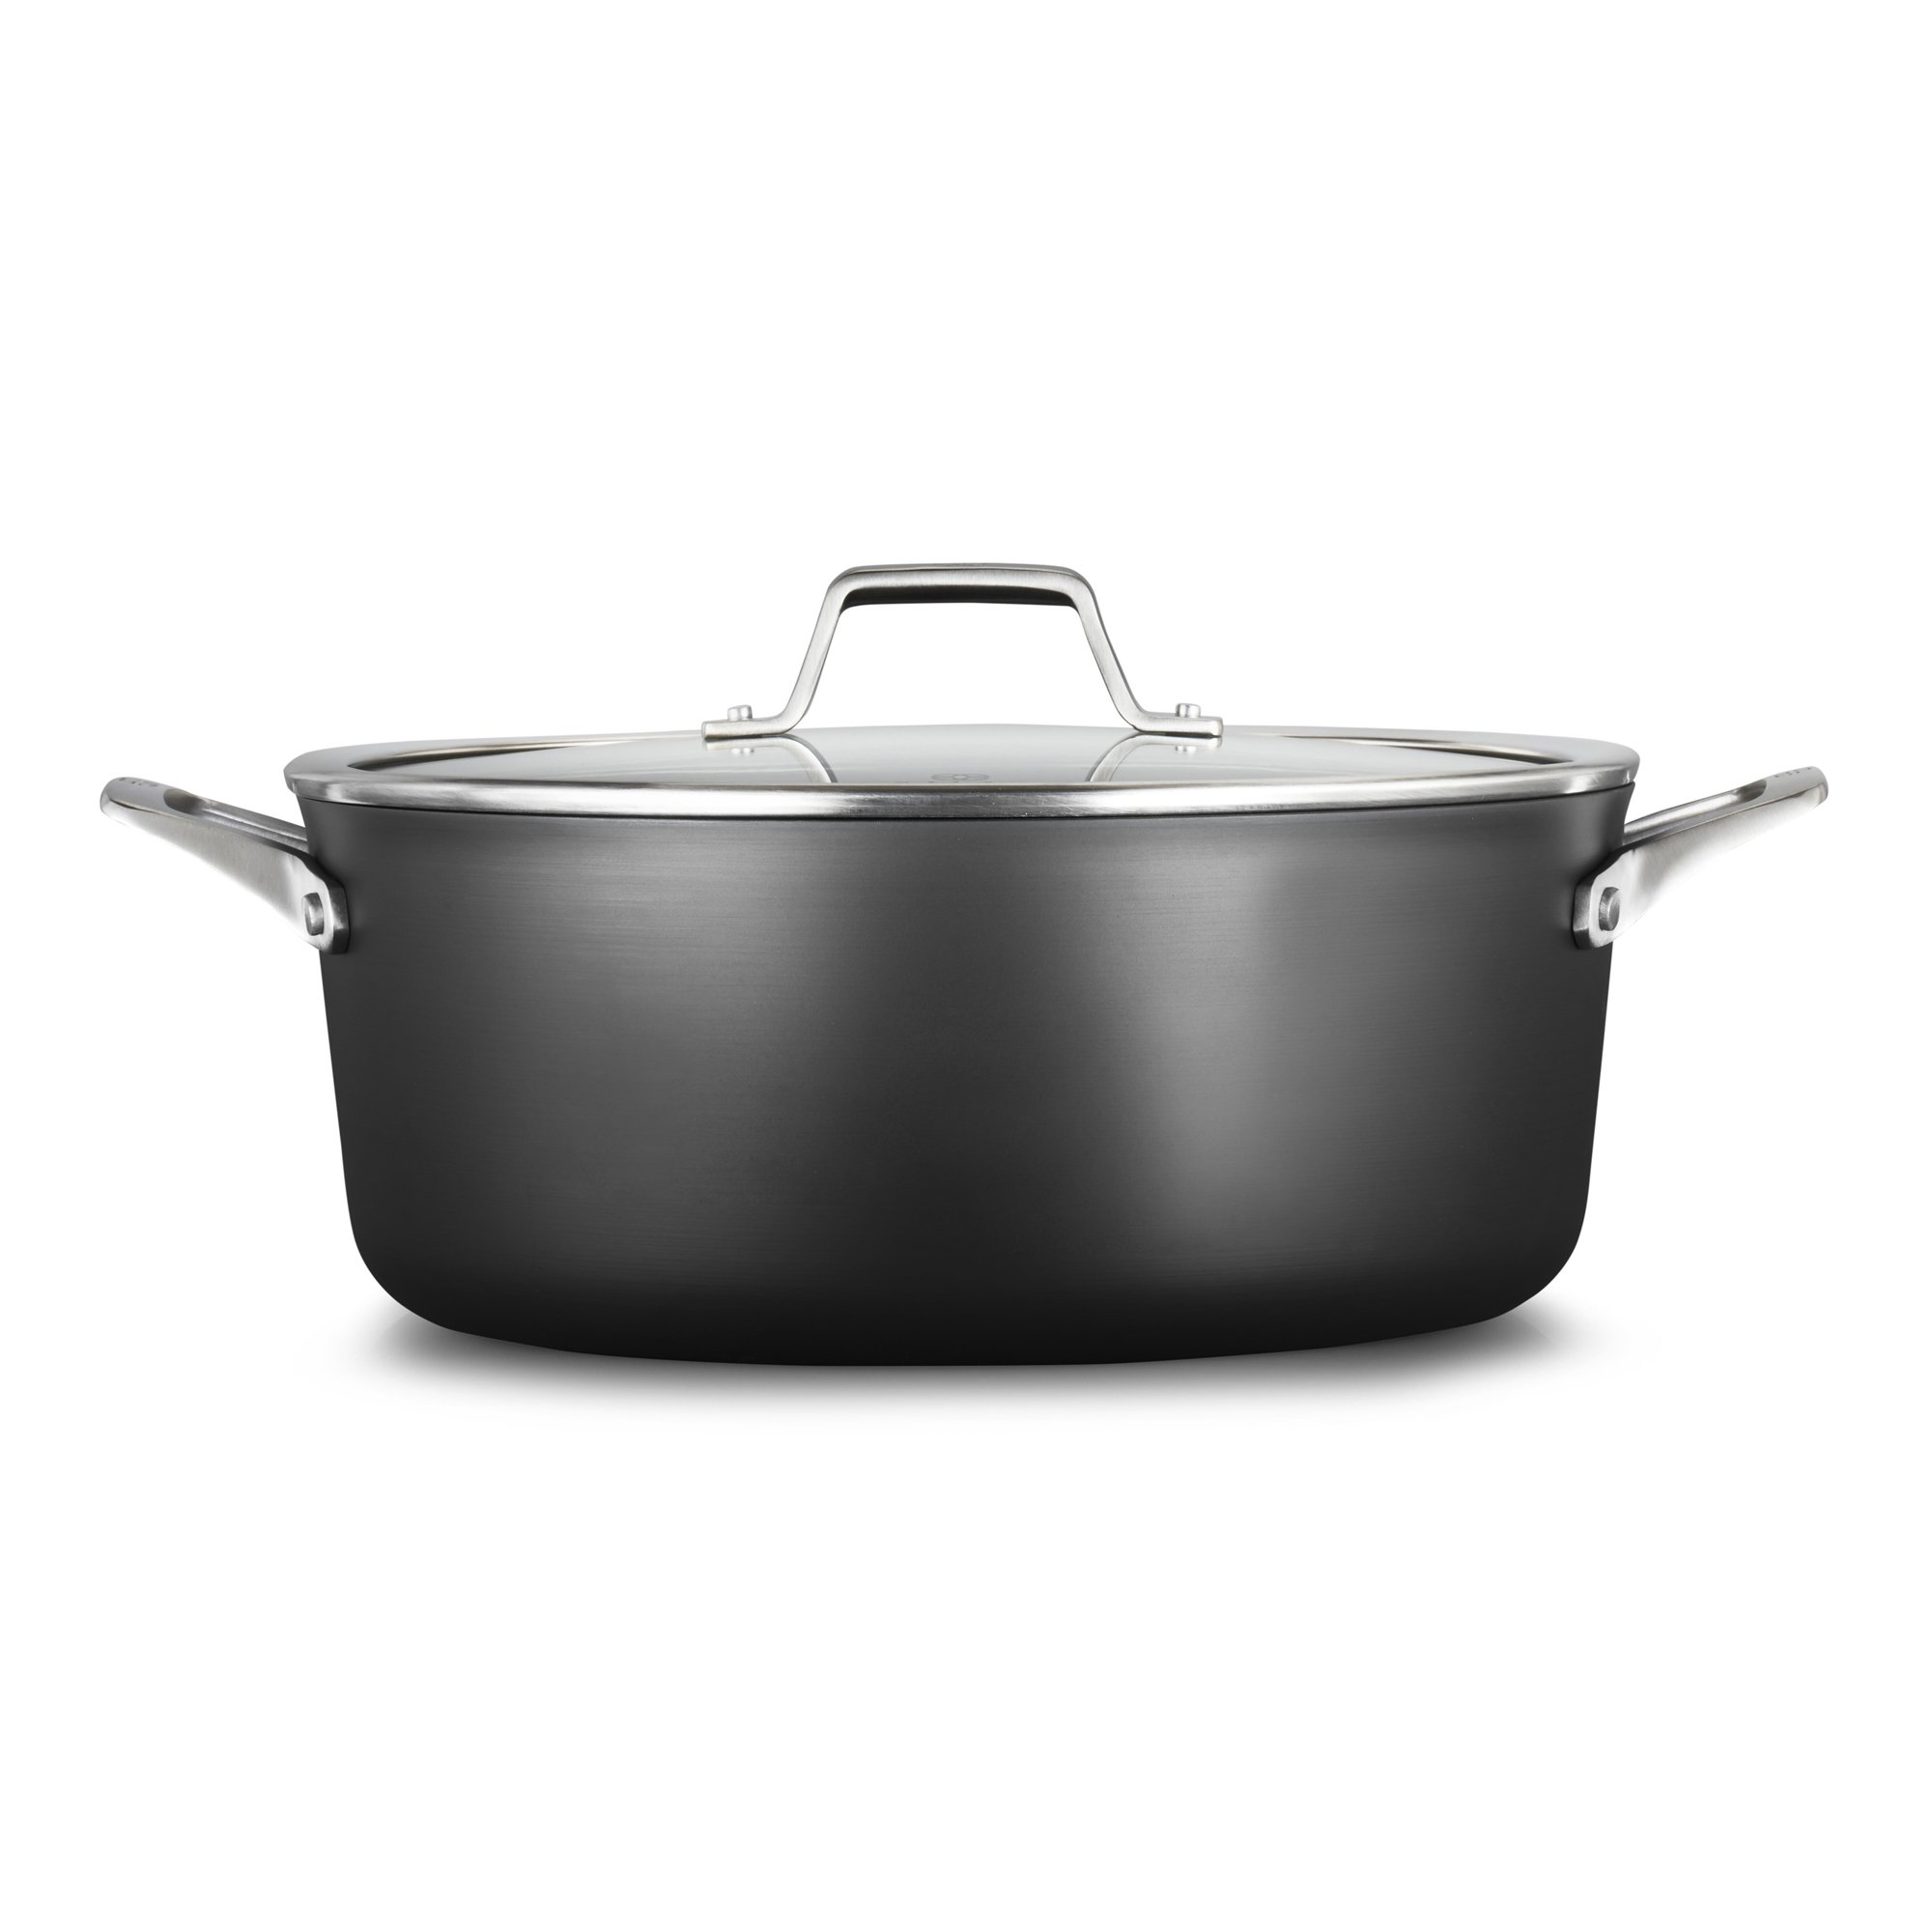 Calphalon Premier Hard-Anodized Nonstick 8.5-Quart Dutch Oven with Cover